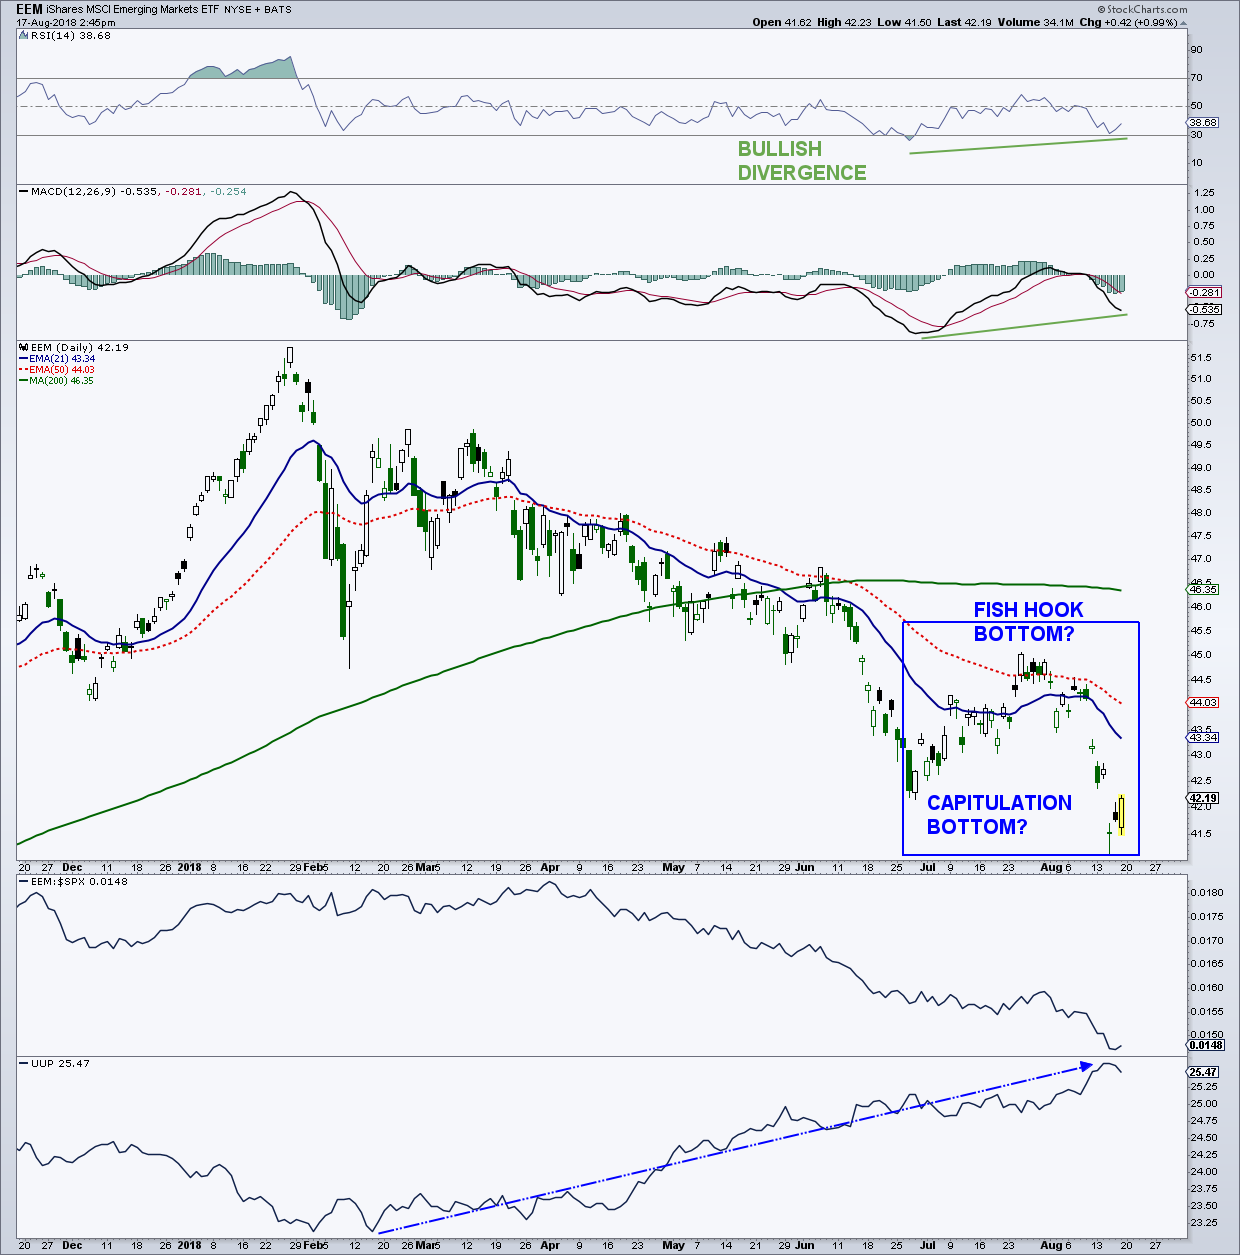 emerging markets bottom pattern eem stock research investing chart_august 20